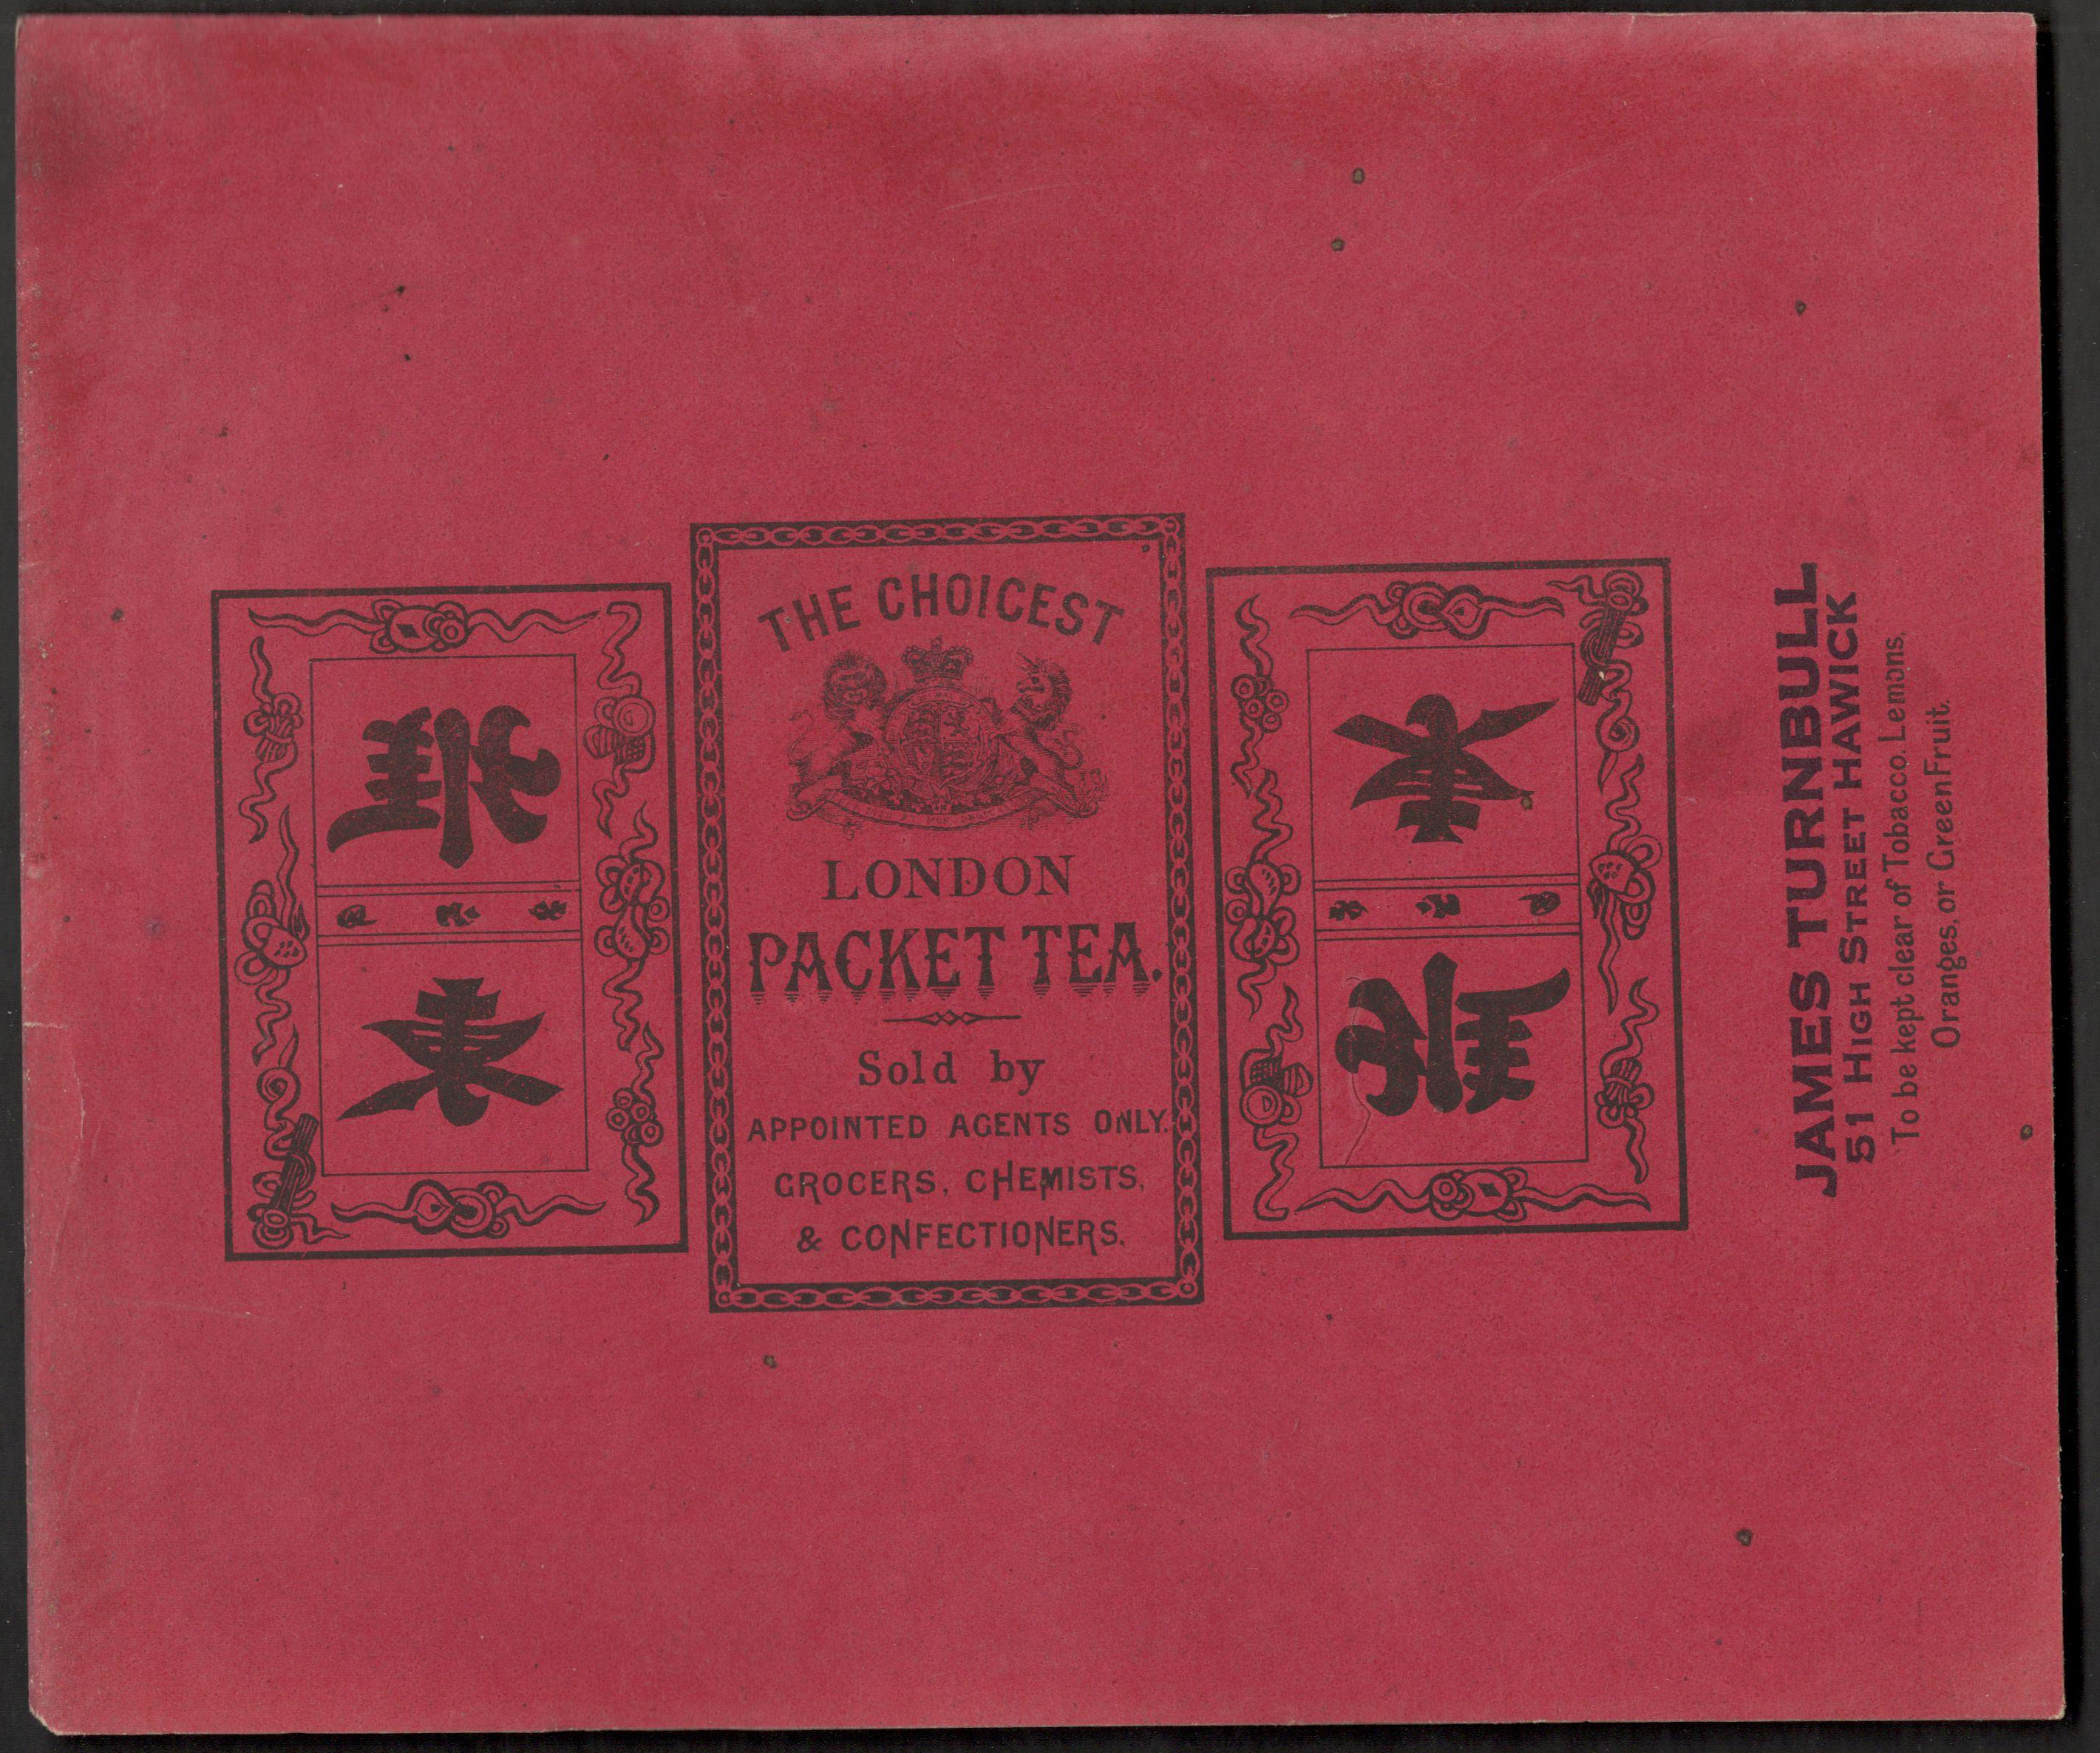 Lot 2 - WRAPPER FOR THE CHOICEST LONDON PACKET TEA BY JAMES TURNBULL WITH CHINESE WRITING